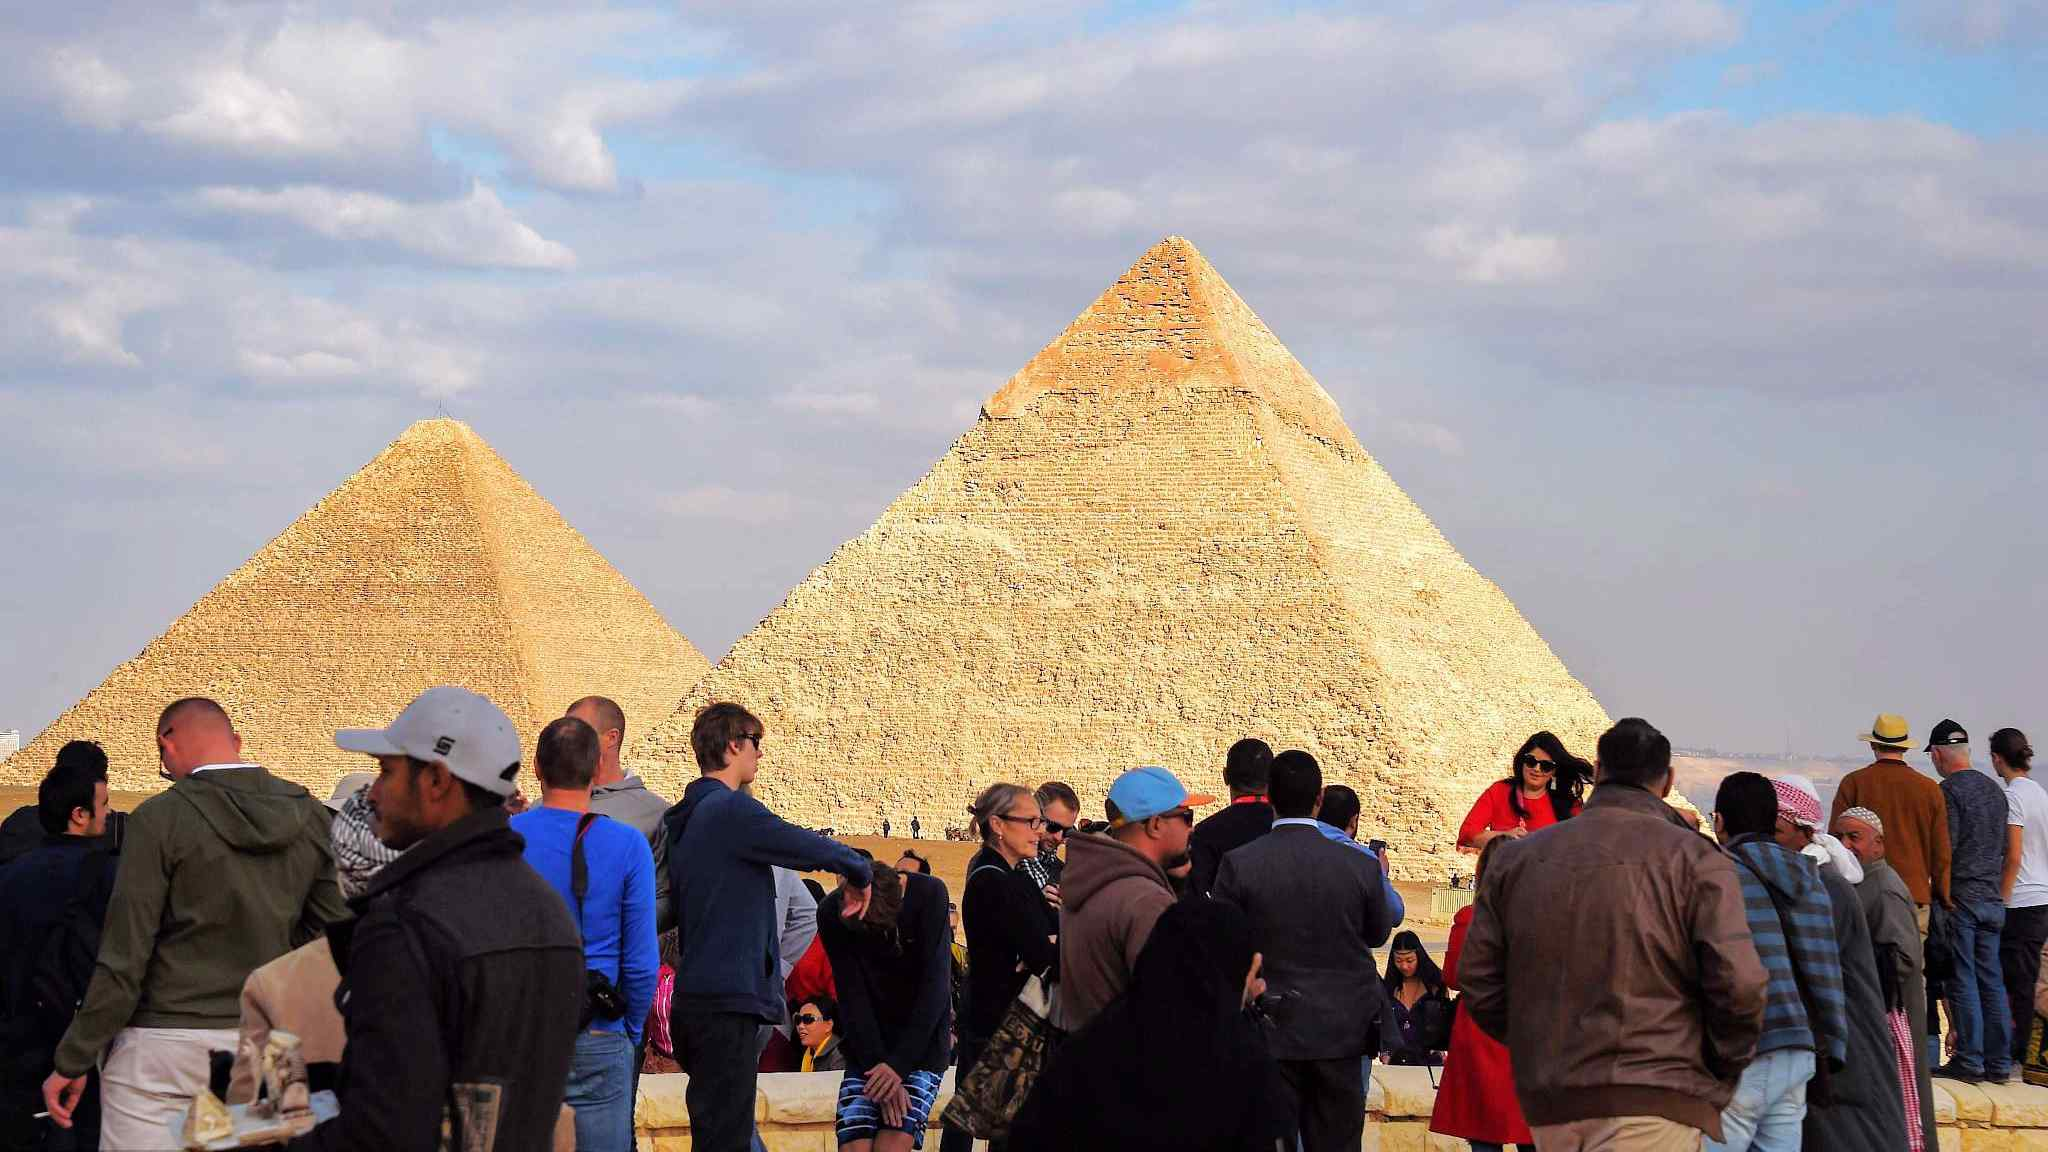 Egyptian economic growth hits 5.6 pct in 2018/2019 fiscal year